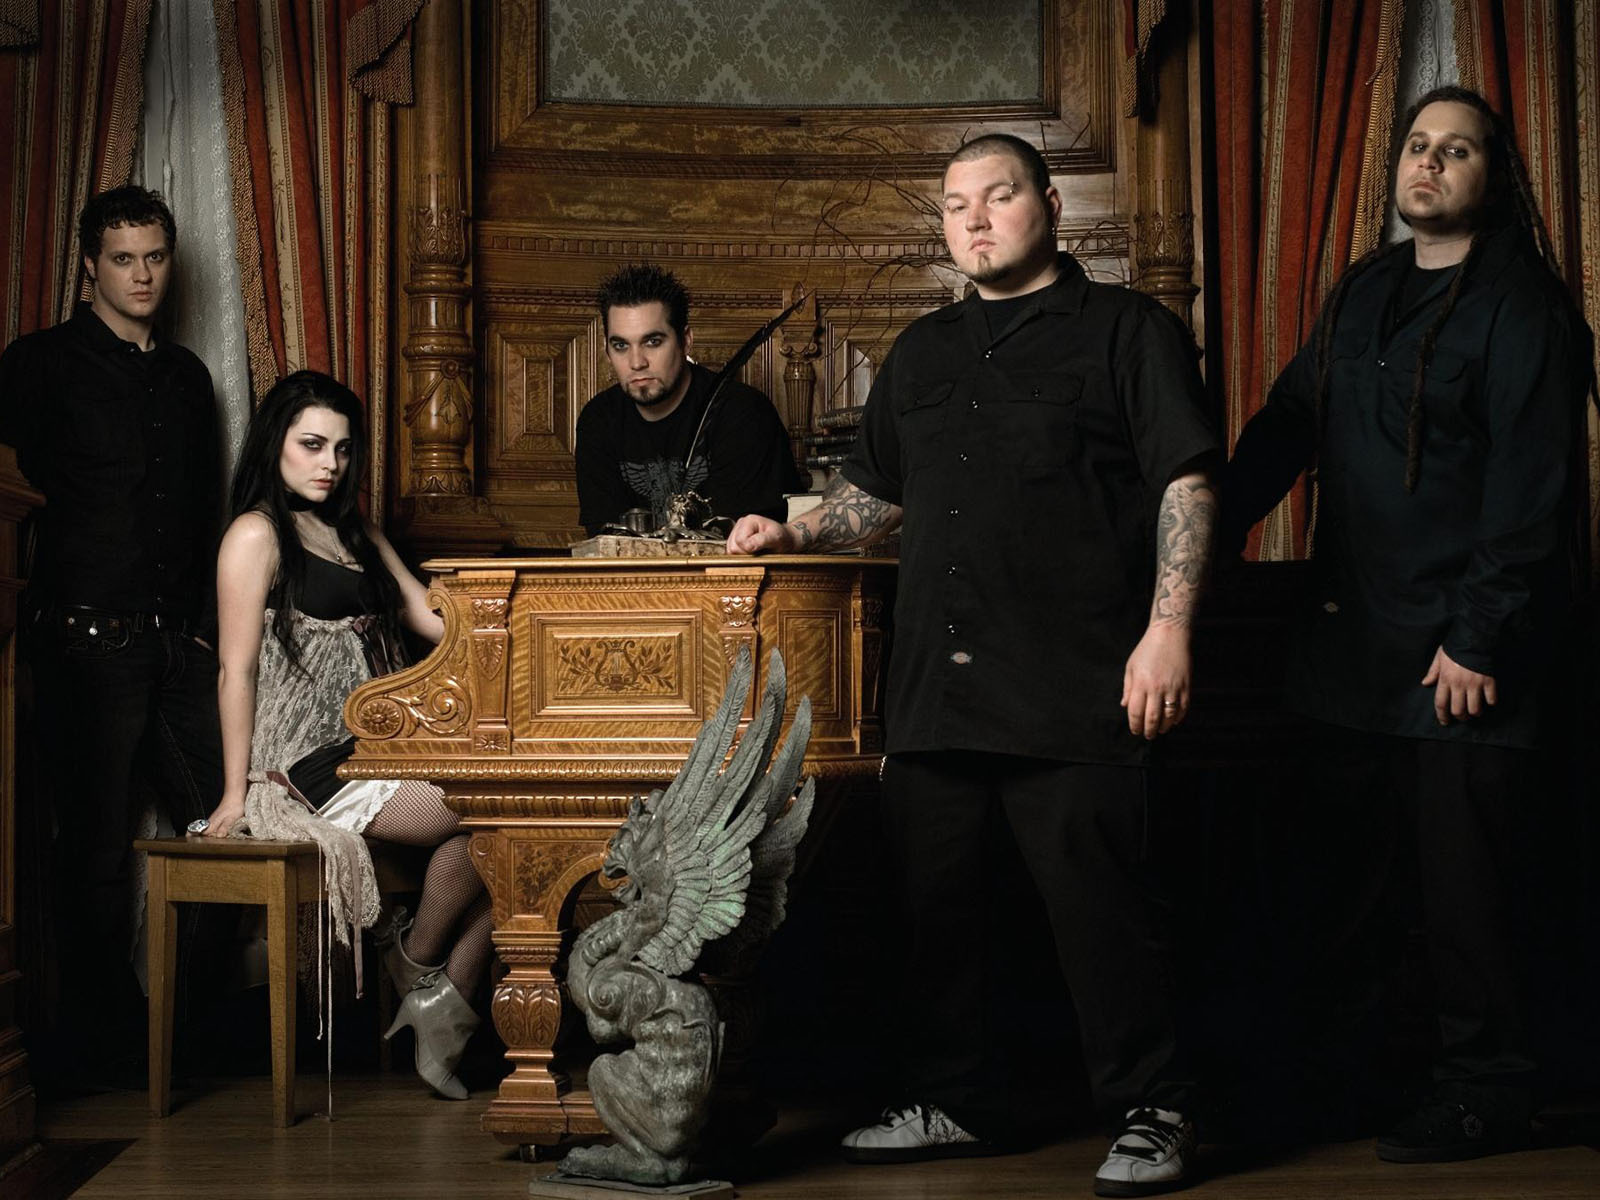 http://images1.fanpop.com/images/photos/2300000/Evanescence-evanescence-2392749-1600-1200.jpg